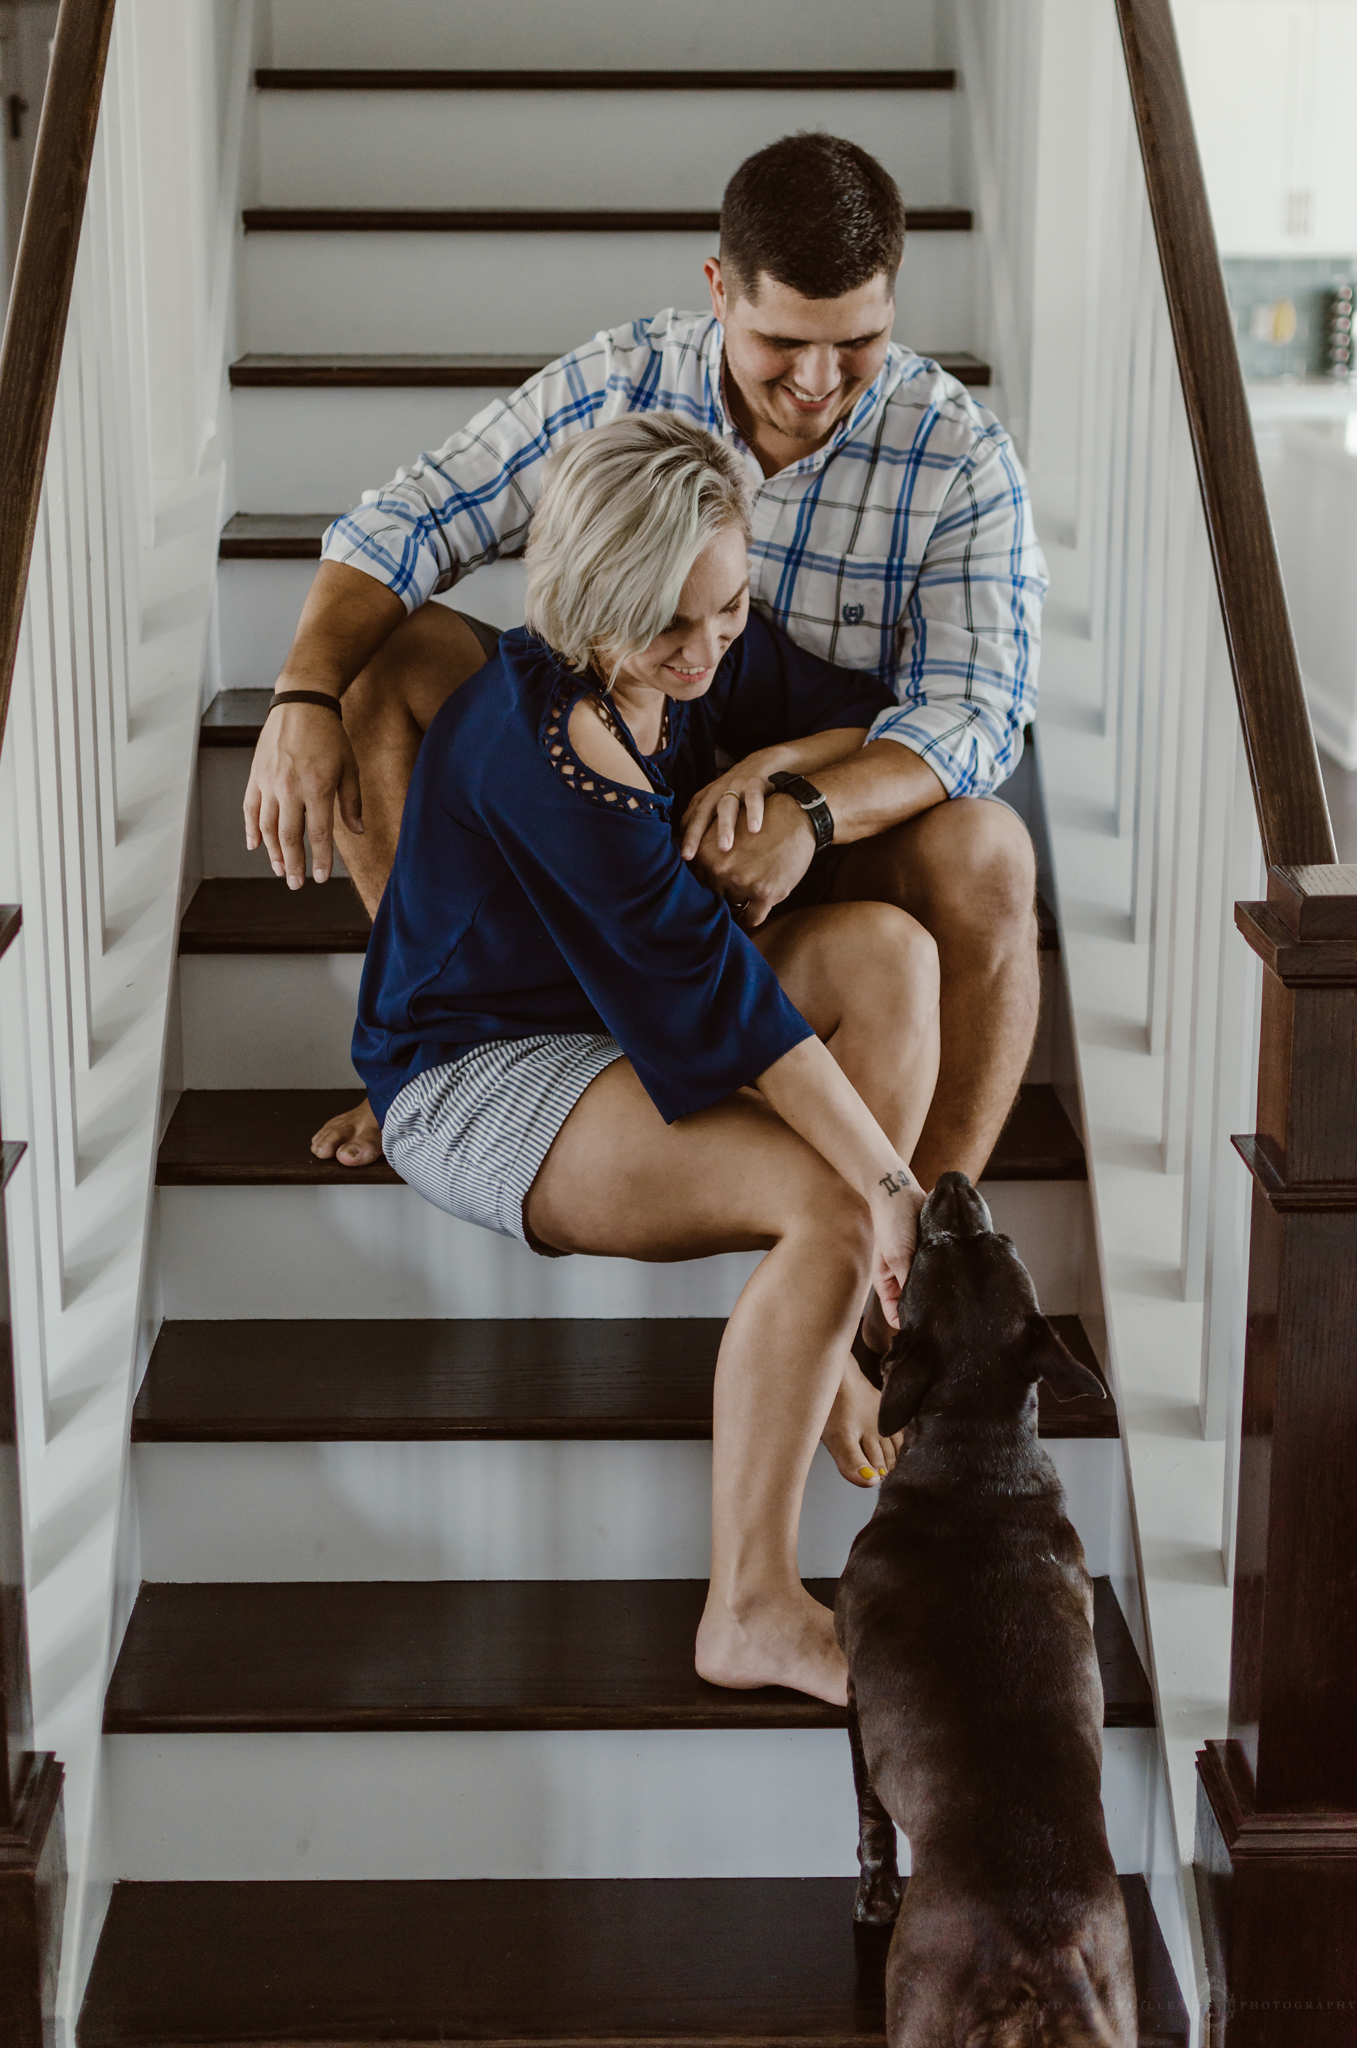 intimate couples portaits on stairs with dog wilmington nc